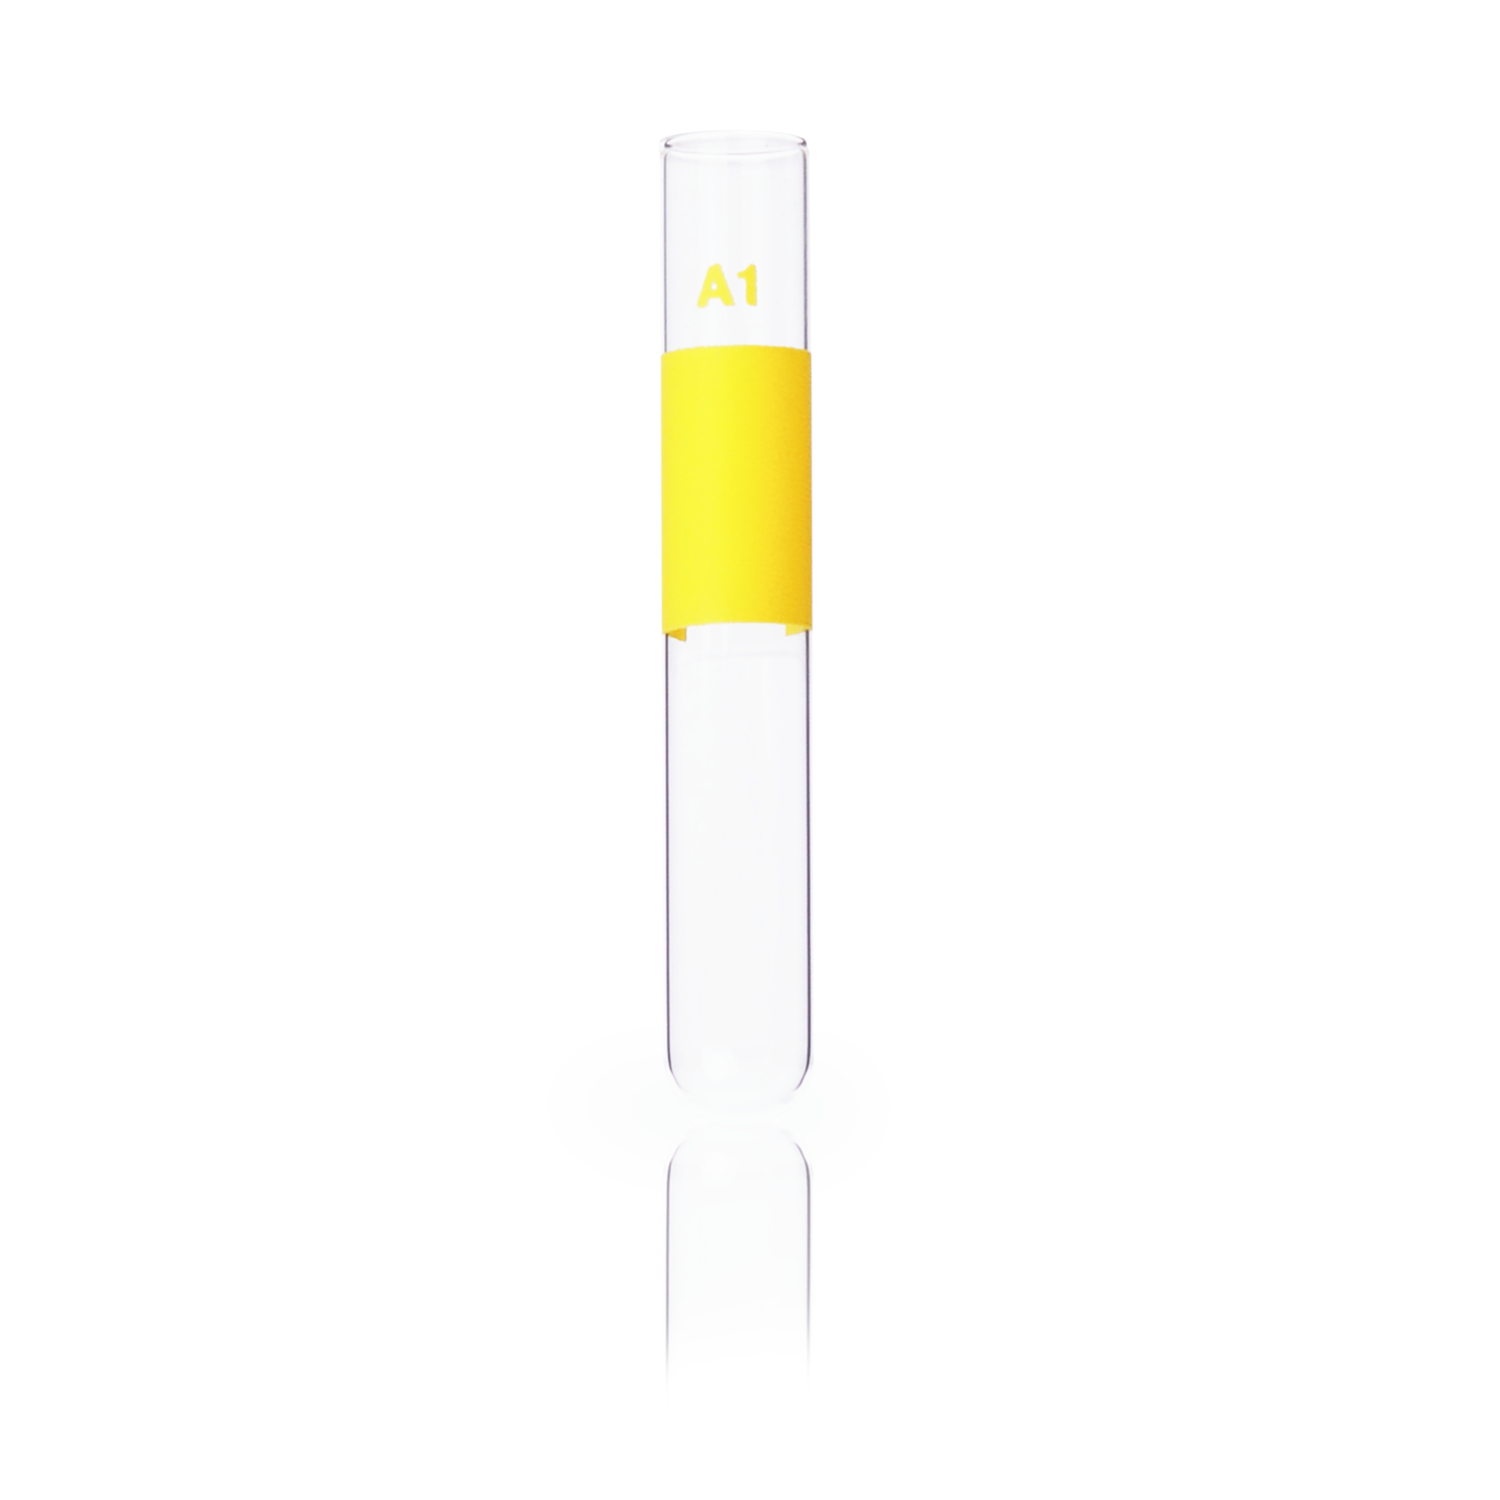 KIMBLE® MARK-M® A1 Yellow Color-Coded Tubes, 10x 75 mm, 3 mL